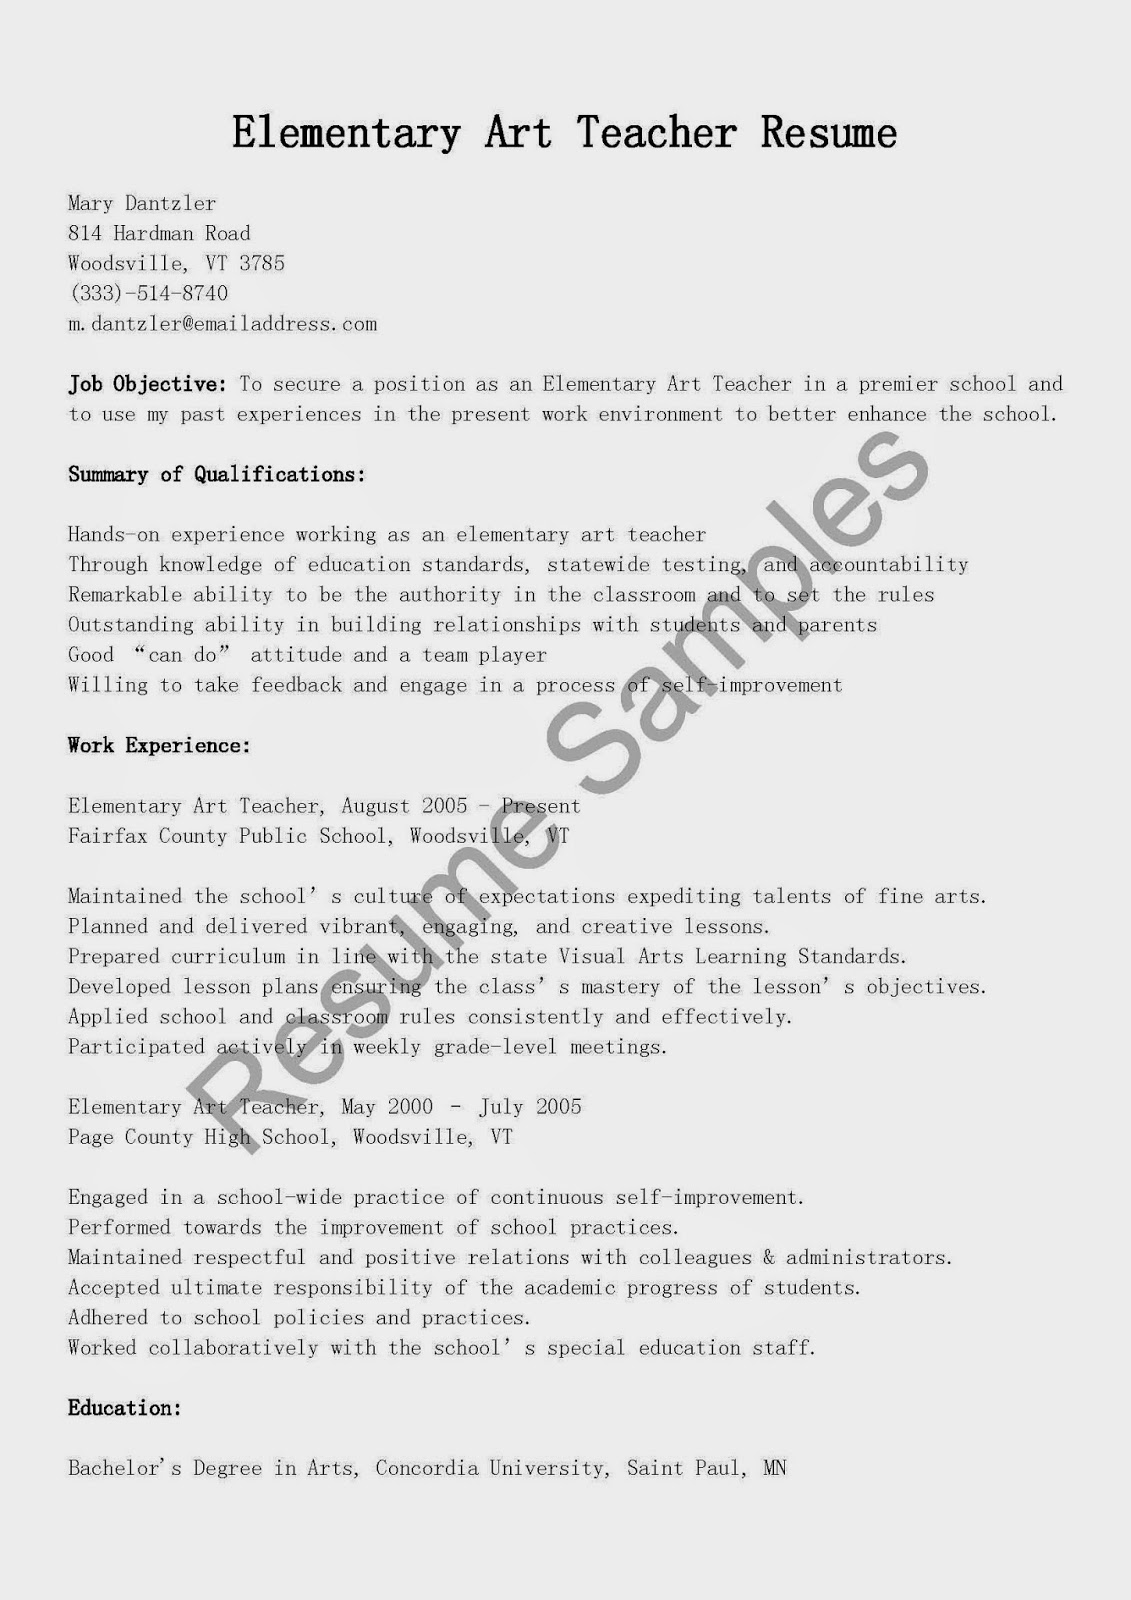 Cv Template Student Summer Job  Online Writing Lab